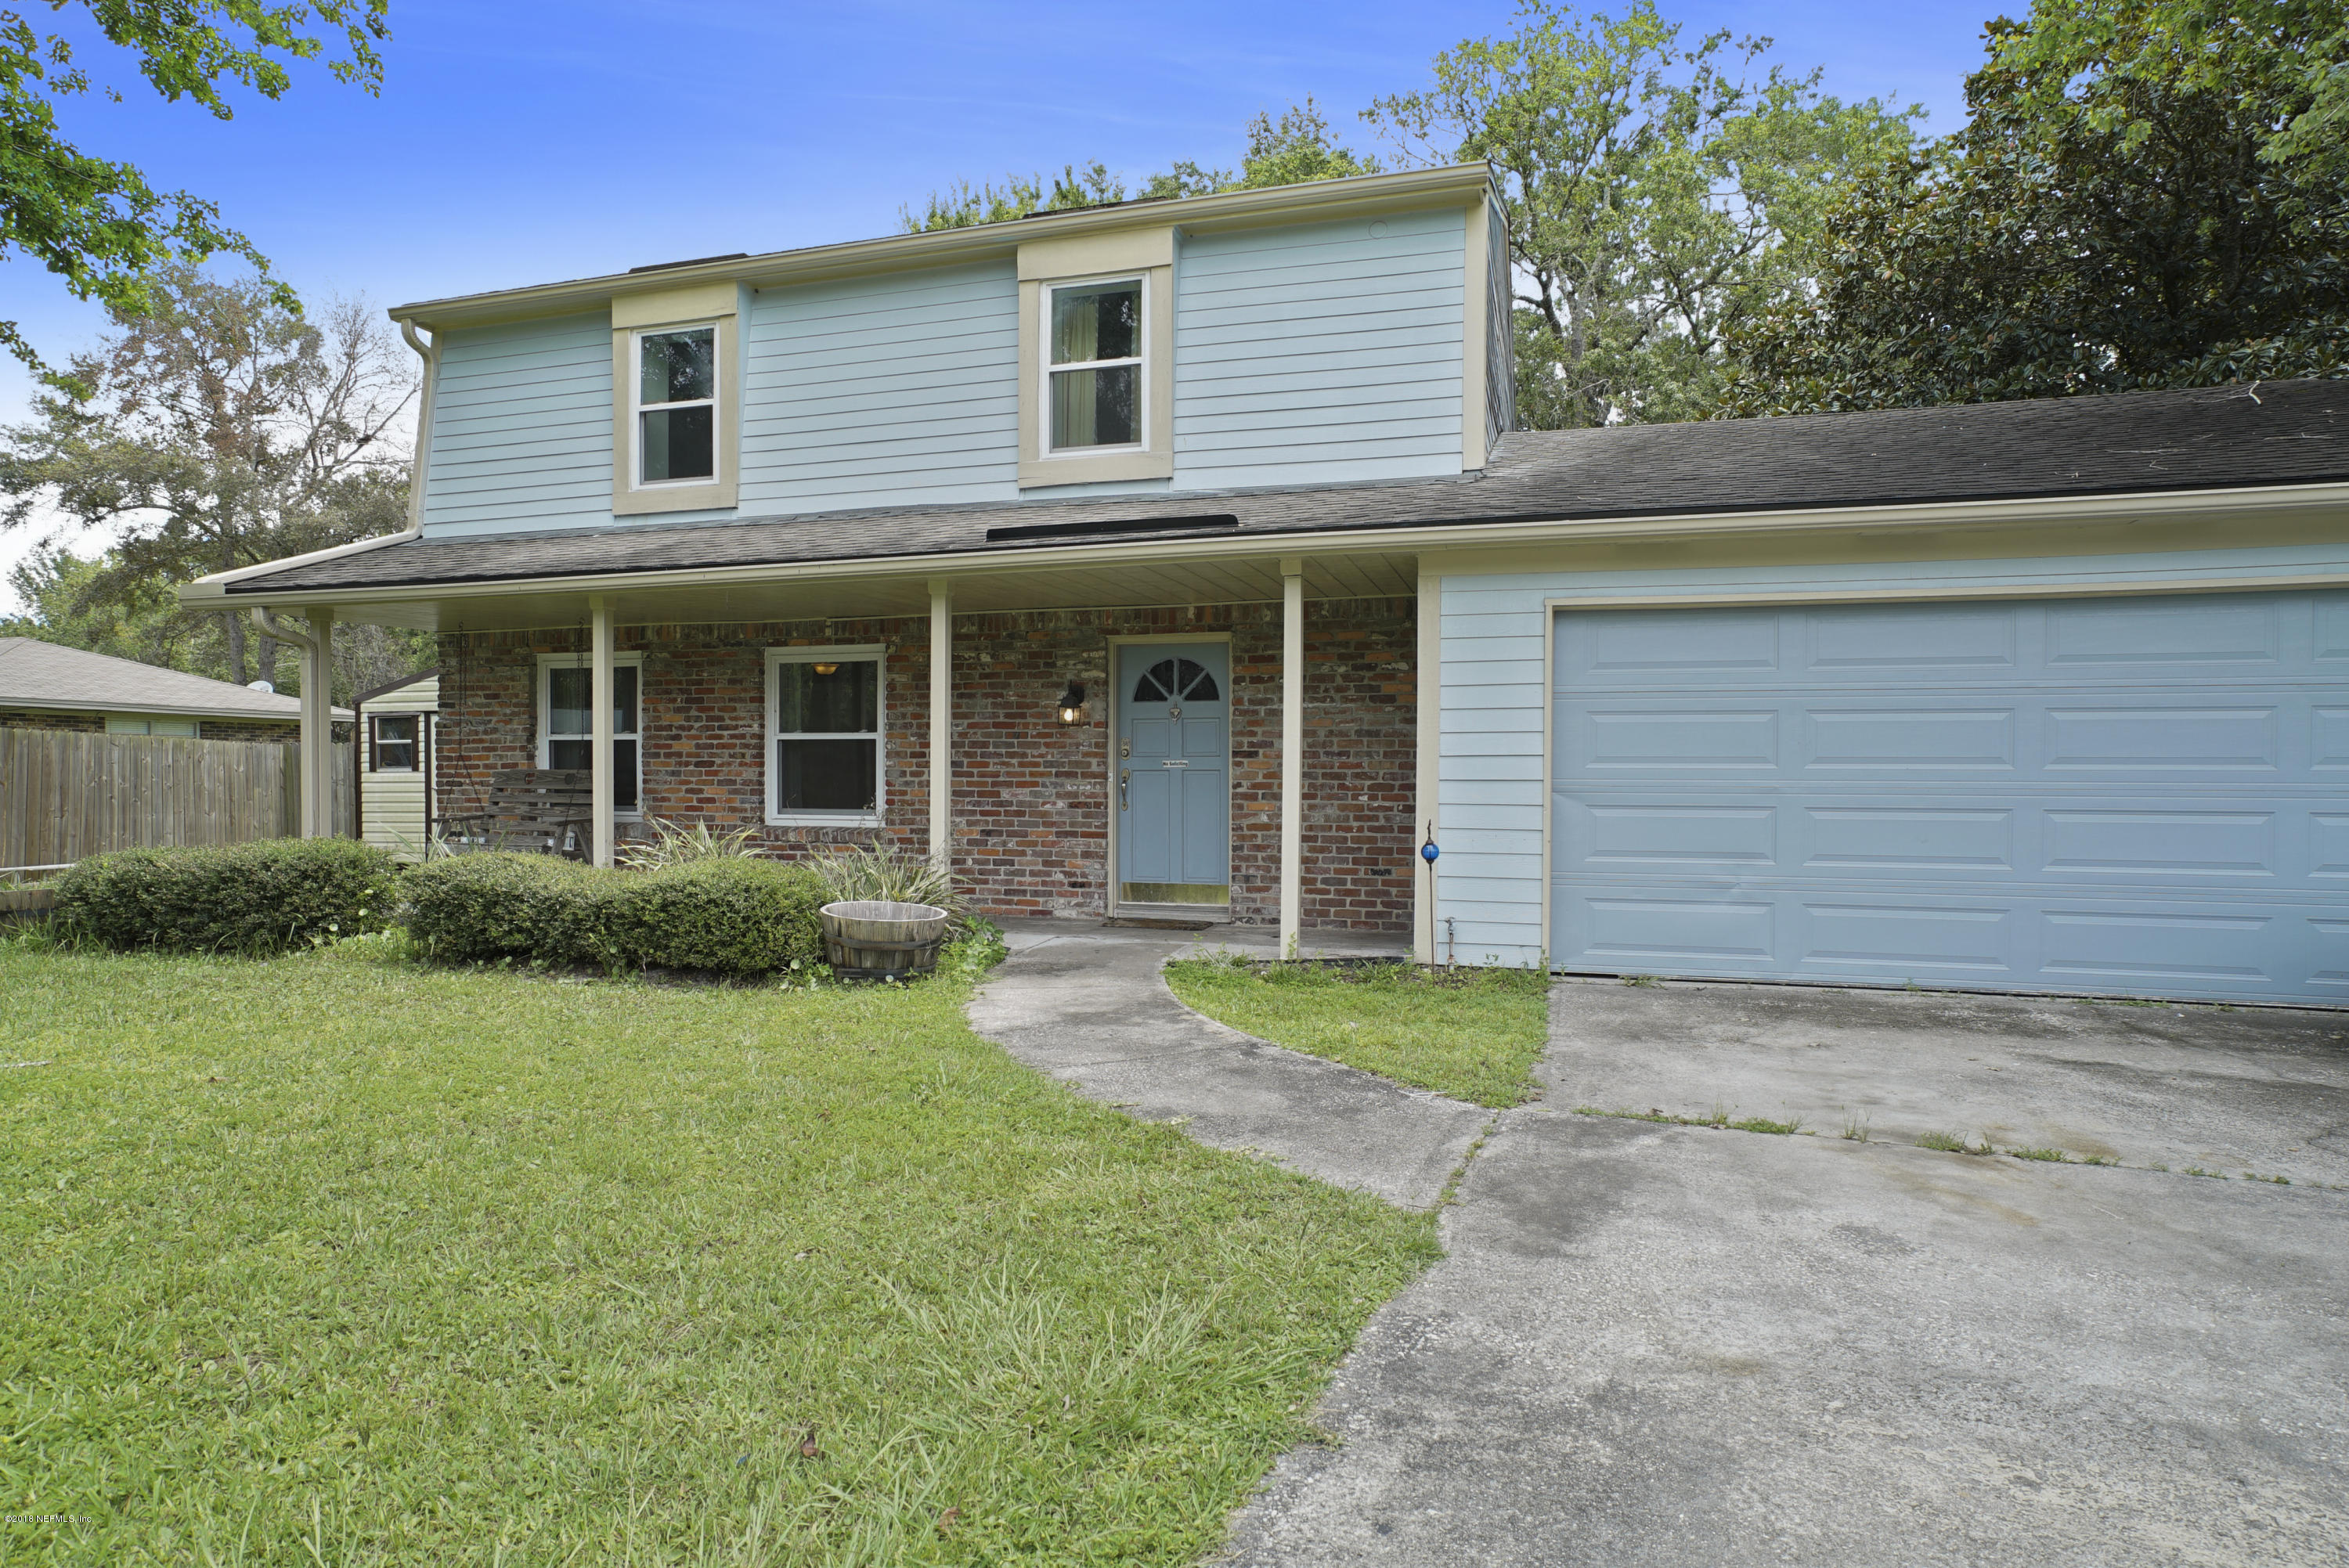 1157 MORGAN, ORANGE PARK, FLORIDA 32073, 3 Bedrooms Bedrooms, ,2 BathroomsBathrooms,Residential - single family,For sale,MORGAN,950883